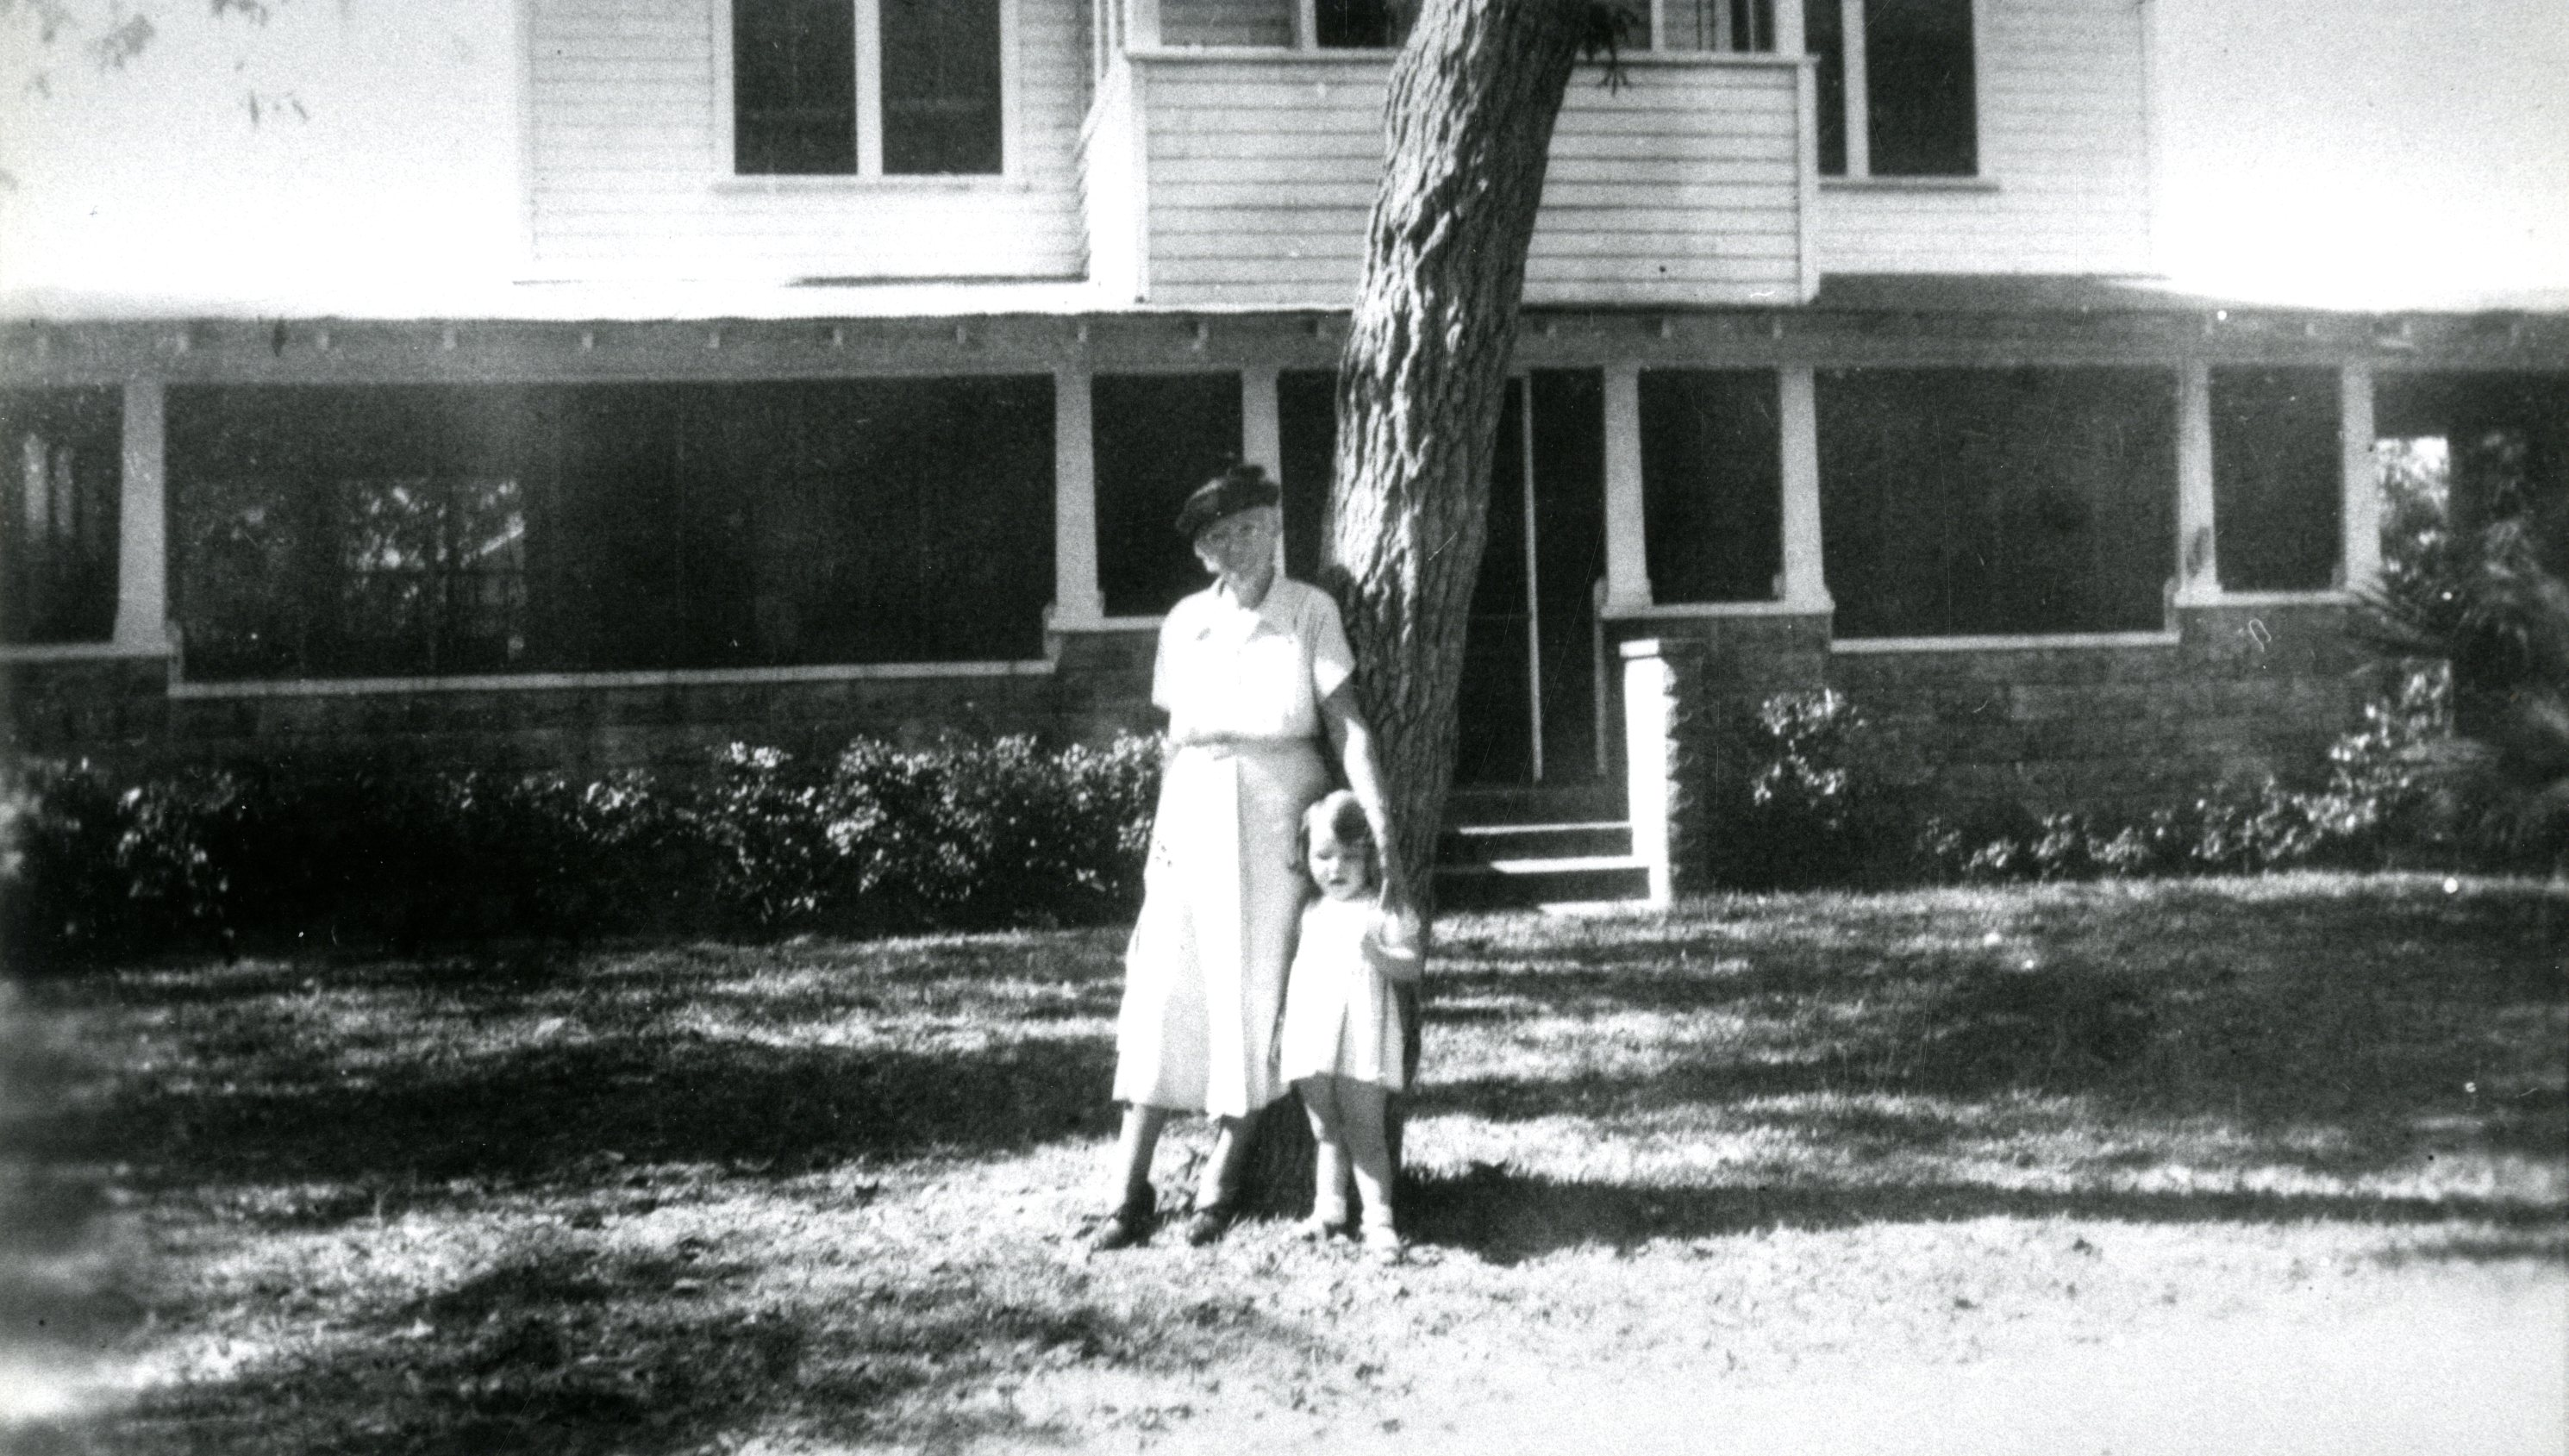 Mrs. Mayes and Kathy Knutsen in front of the Walsingham House, Largo, Florida, 1949.